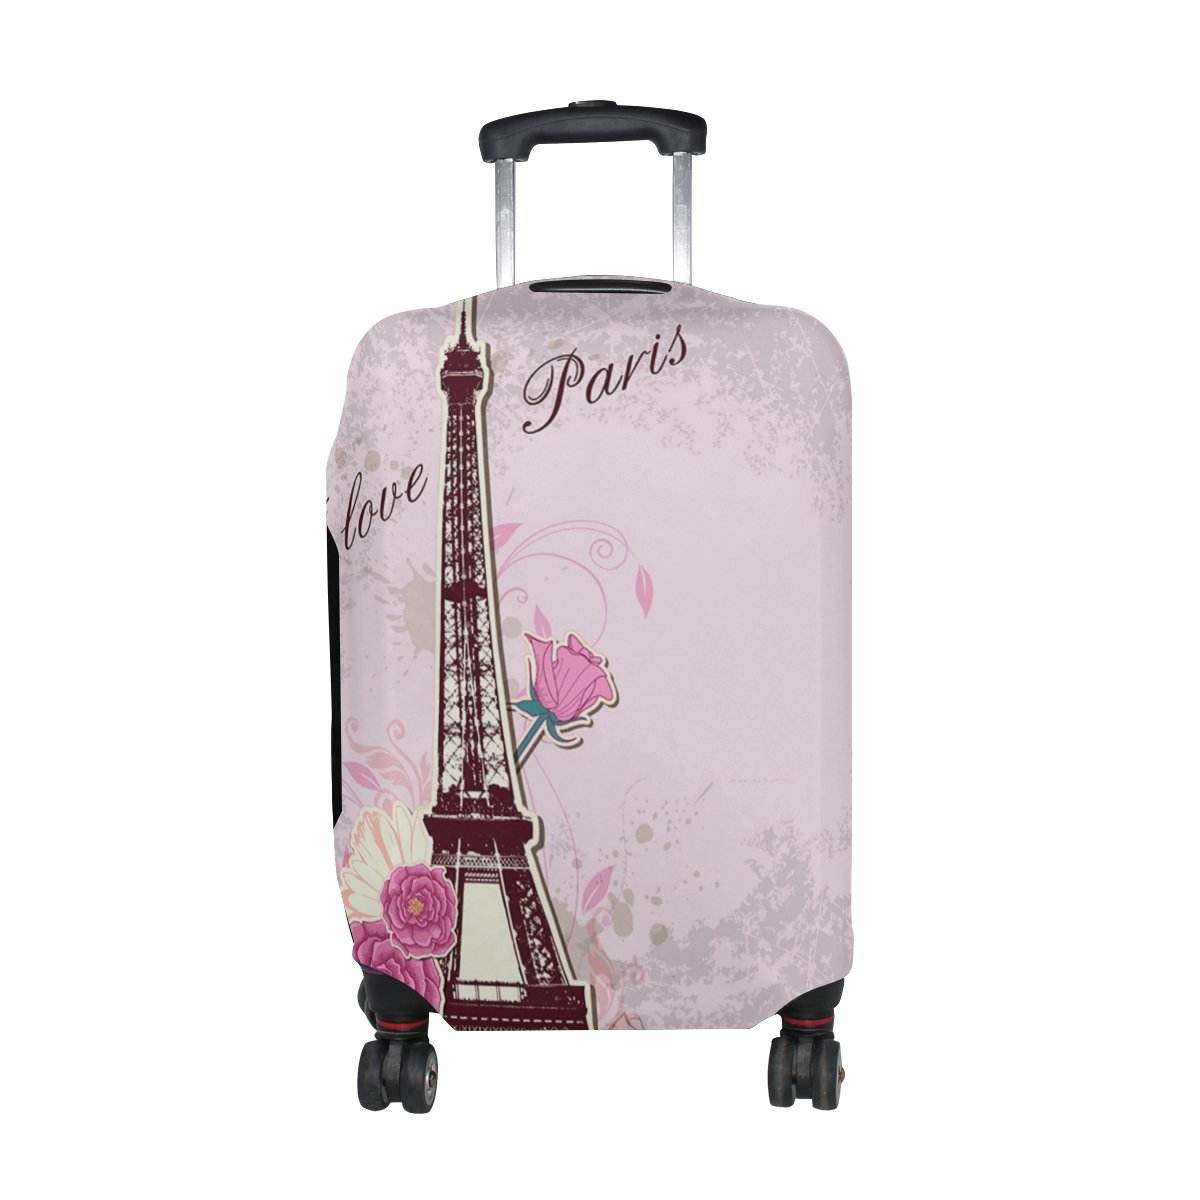 Cooper girl Love Paris Travel Luggage Cover Suitcase Protector Fits 23-26 Inch